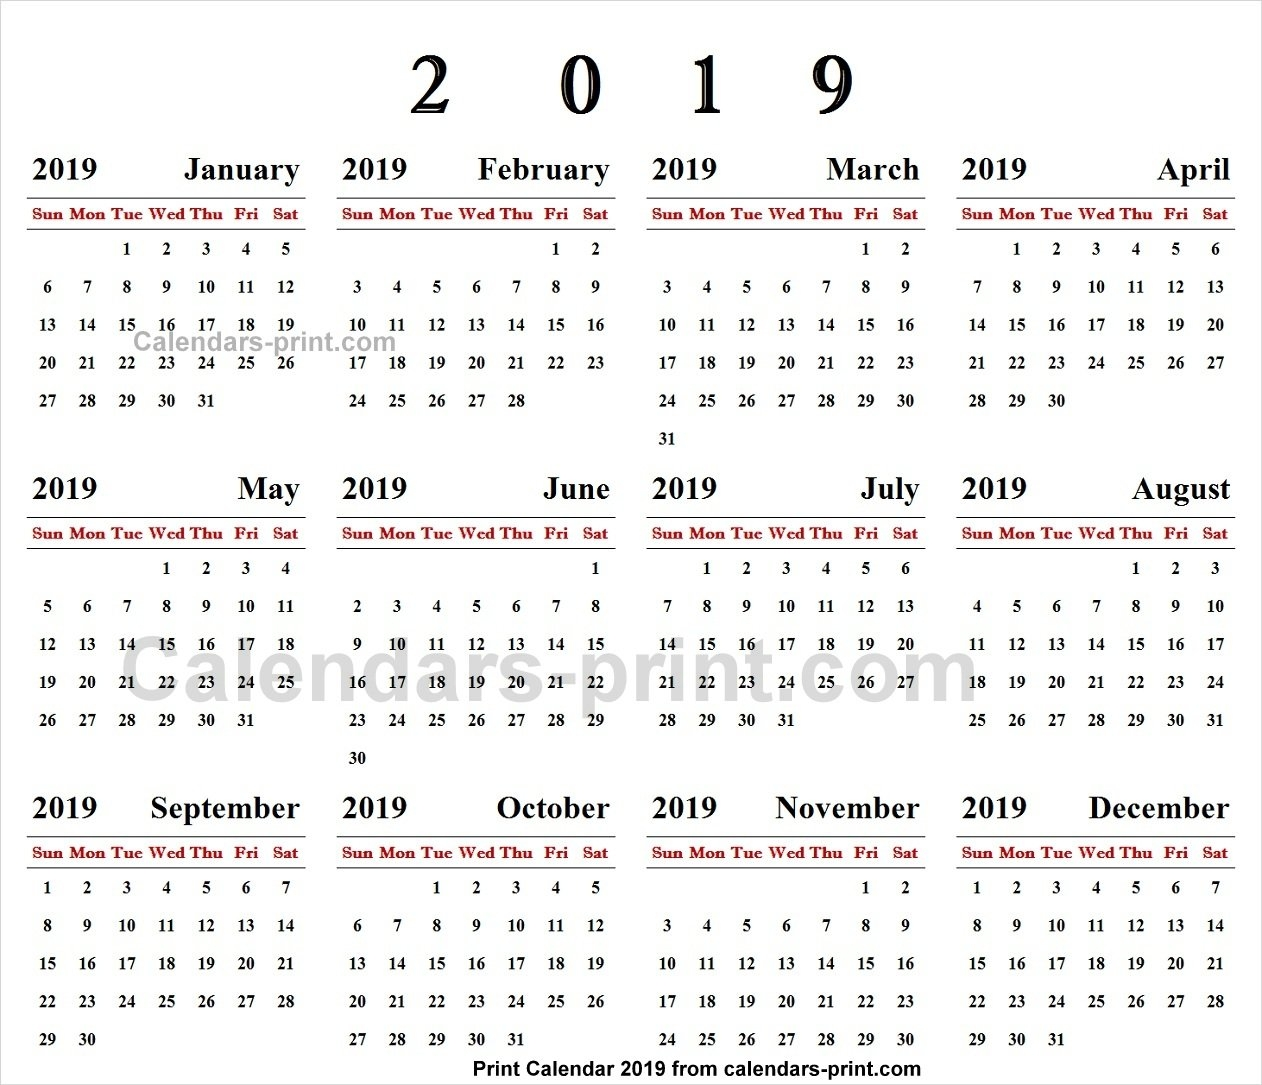 Online Calendar 2019 Printable Template With Notes | Holidays Calendar 2019 Order Online